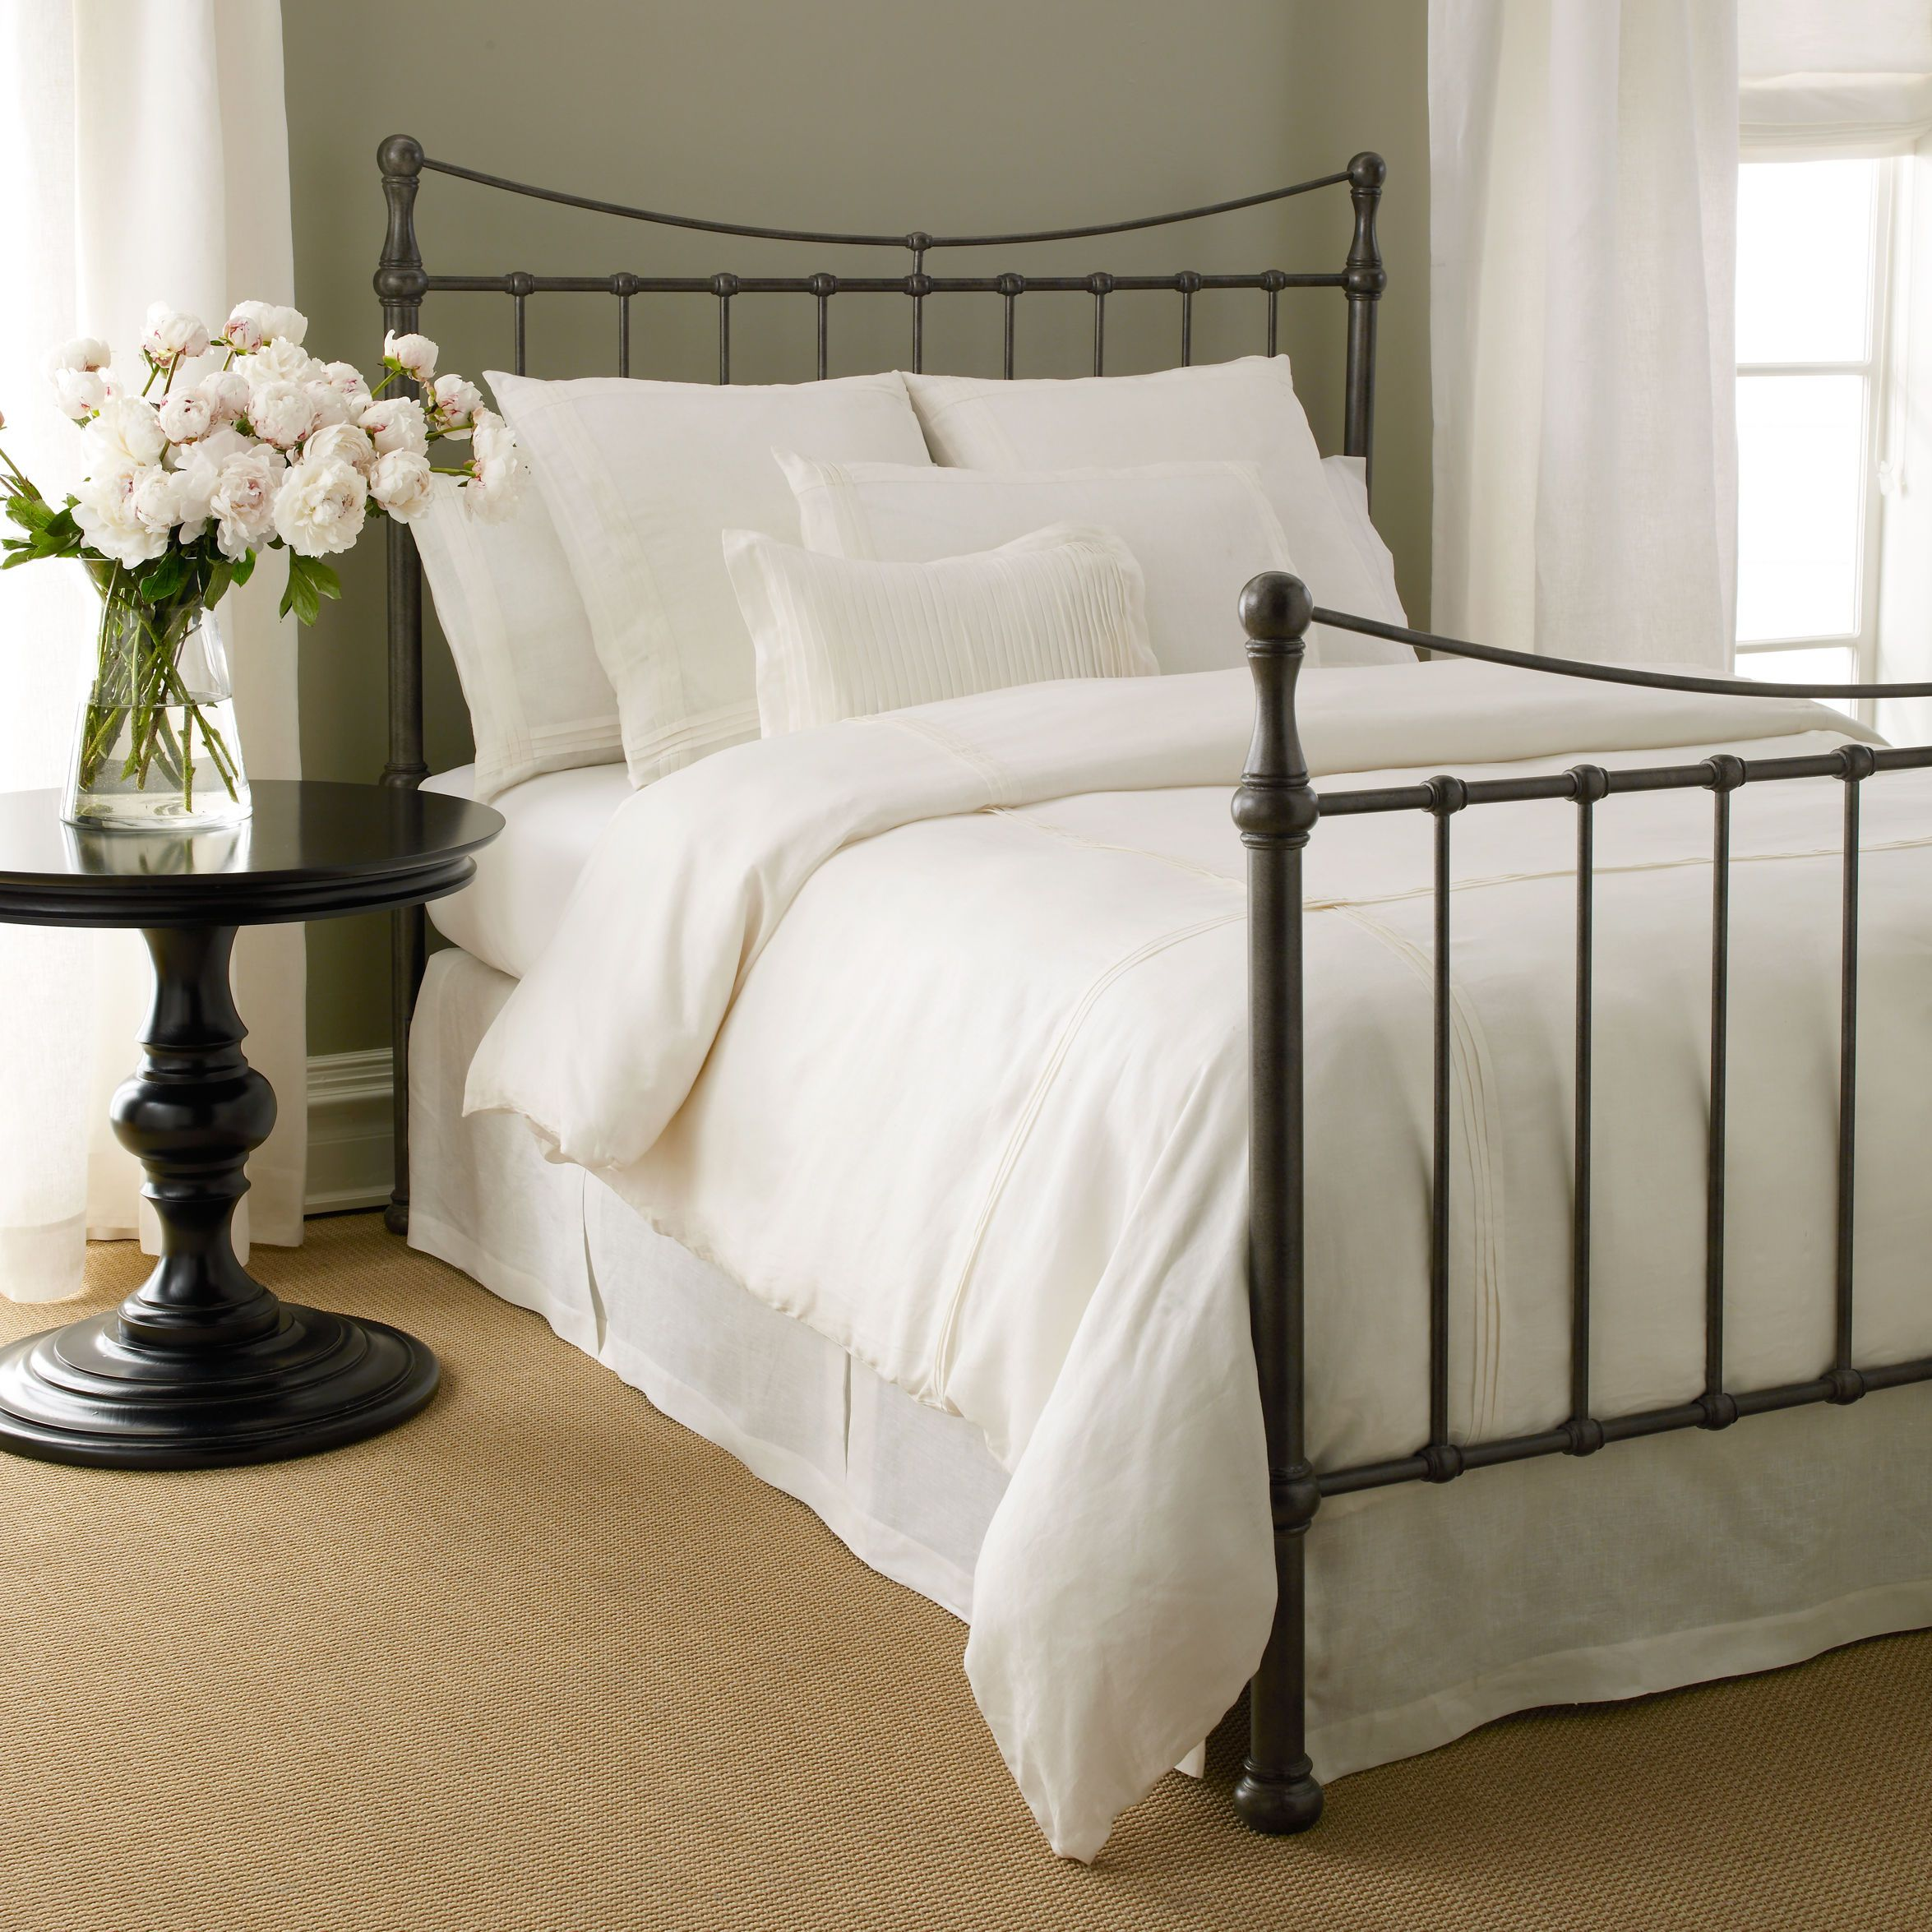 Danby Bed Ethan Allen US Our new bed just love it